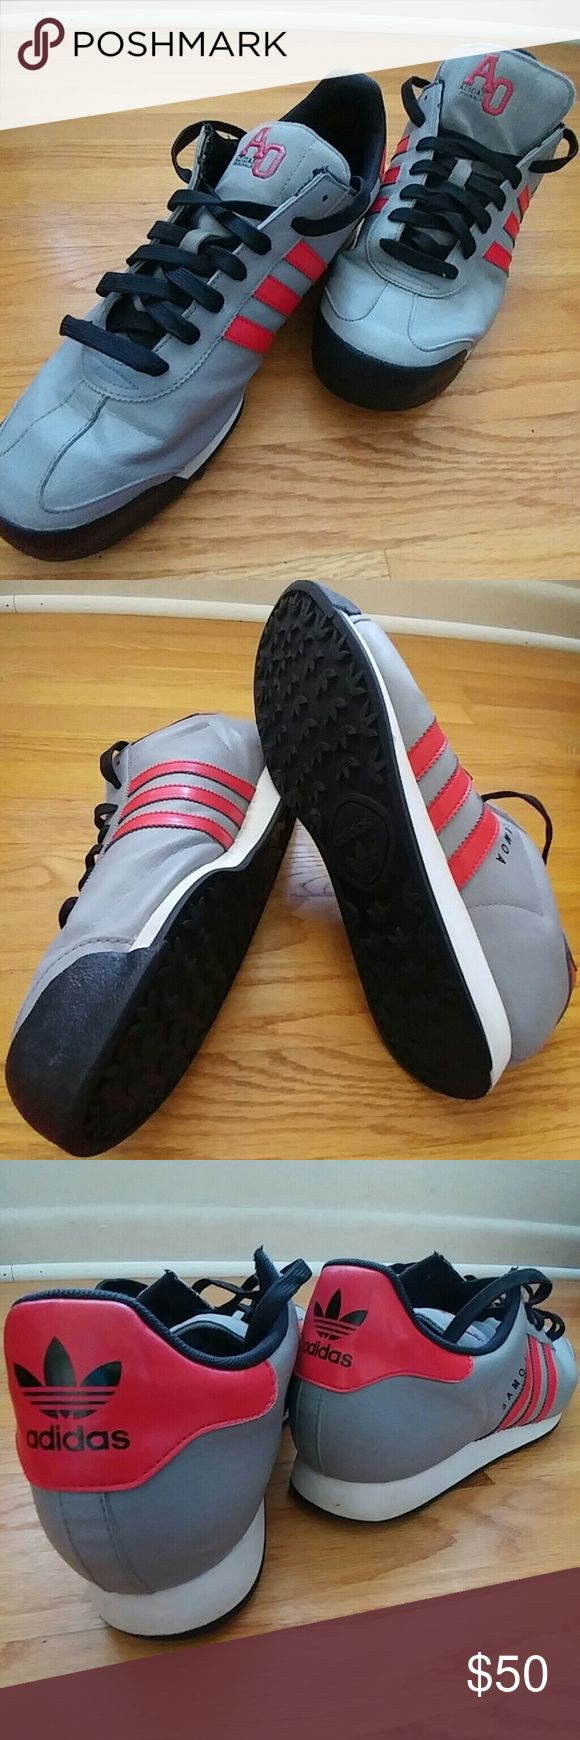 MEN'S ADIDAS ORIGINALS SAMOA SNEAKERS SIZE 13 Men's ADIDAS ORIGINALS (AO) SAMOA Sneakers Size 13.  Grey with Red.  EUC.  Clean.  Well cared for.  **Nice**!! Adidas Shoes Sneakers